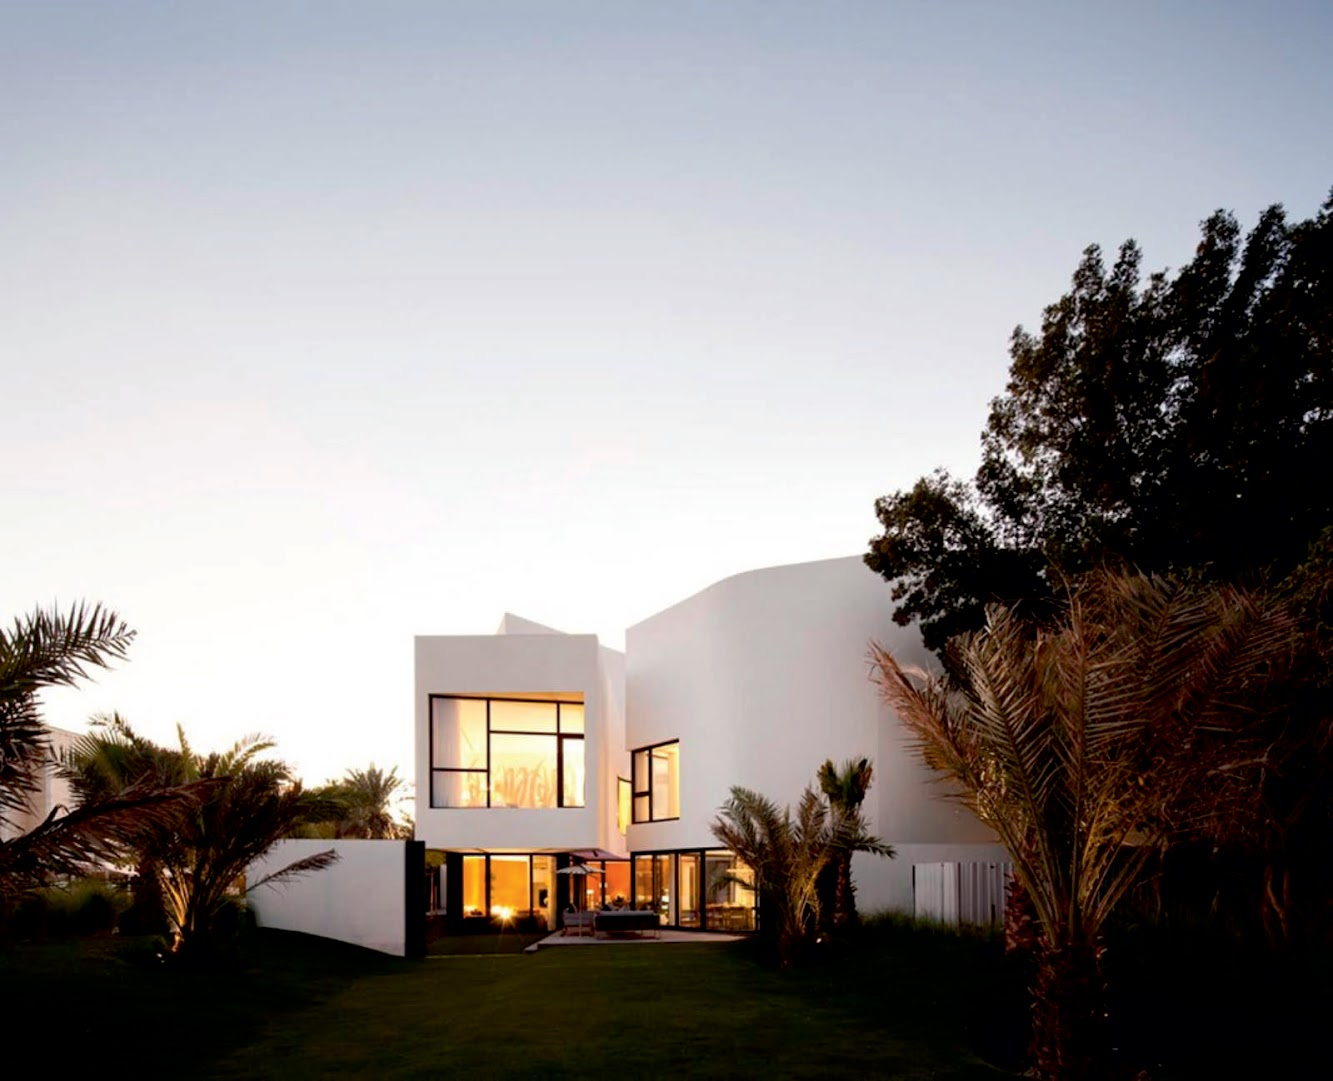 Al-Nuzha, Kuwait: Mop House by Agi Architects